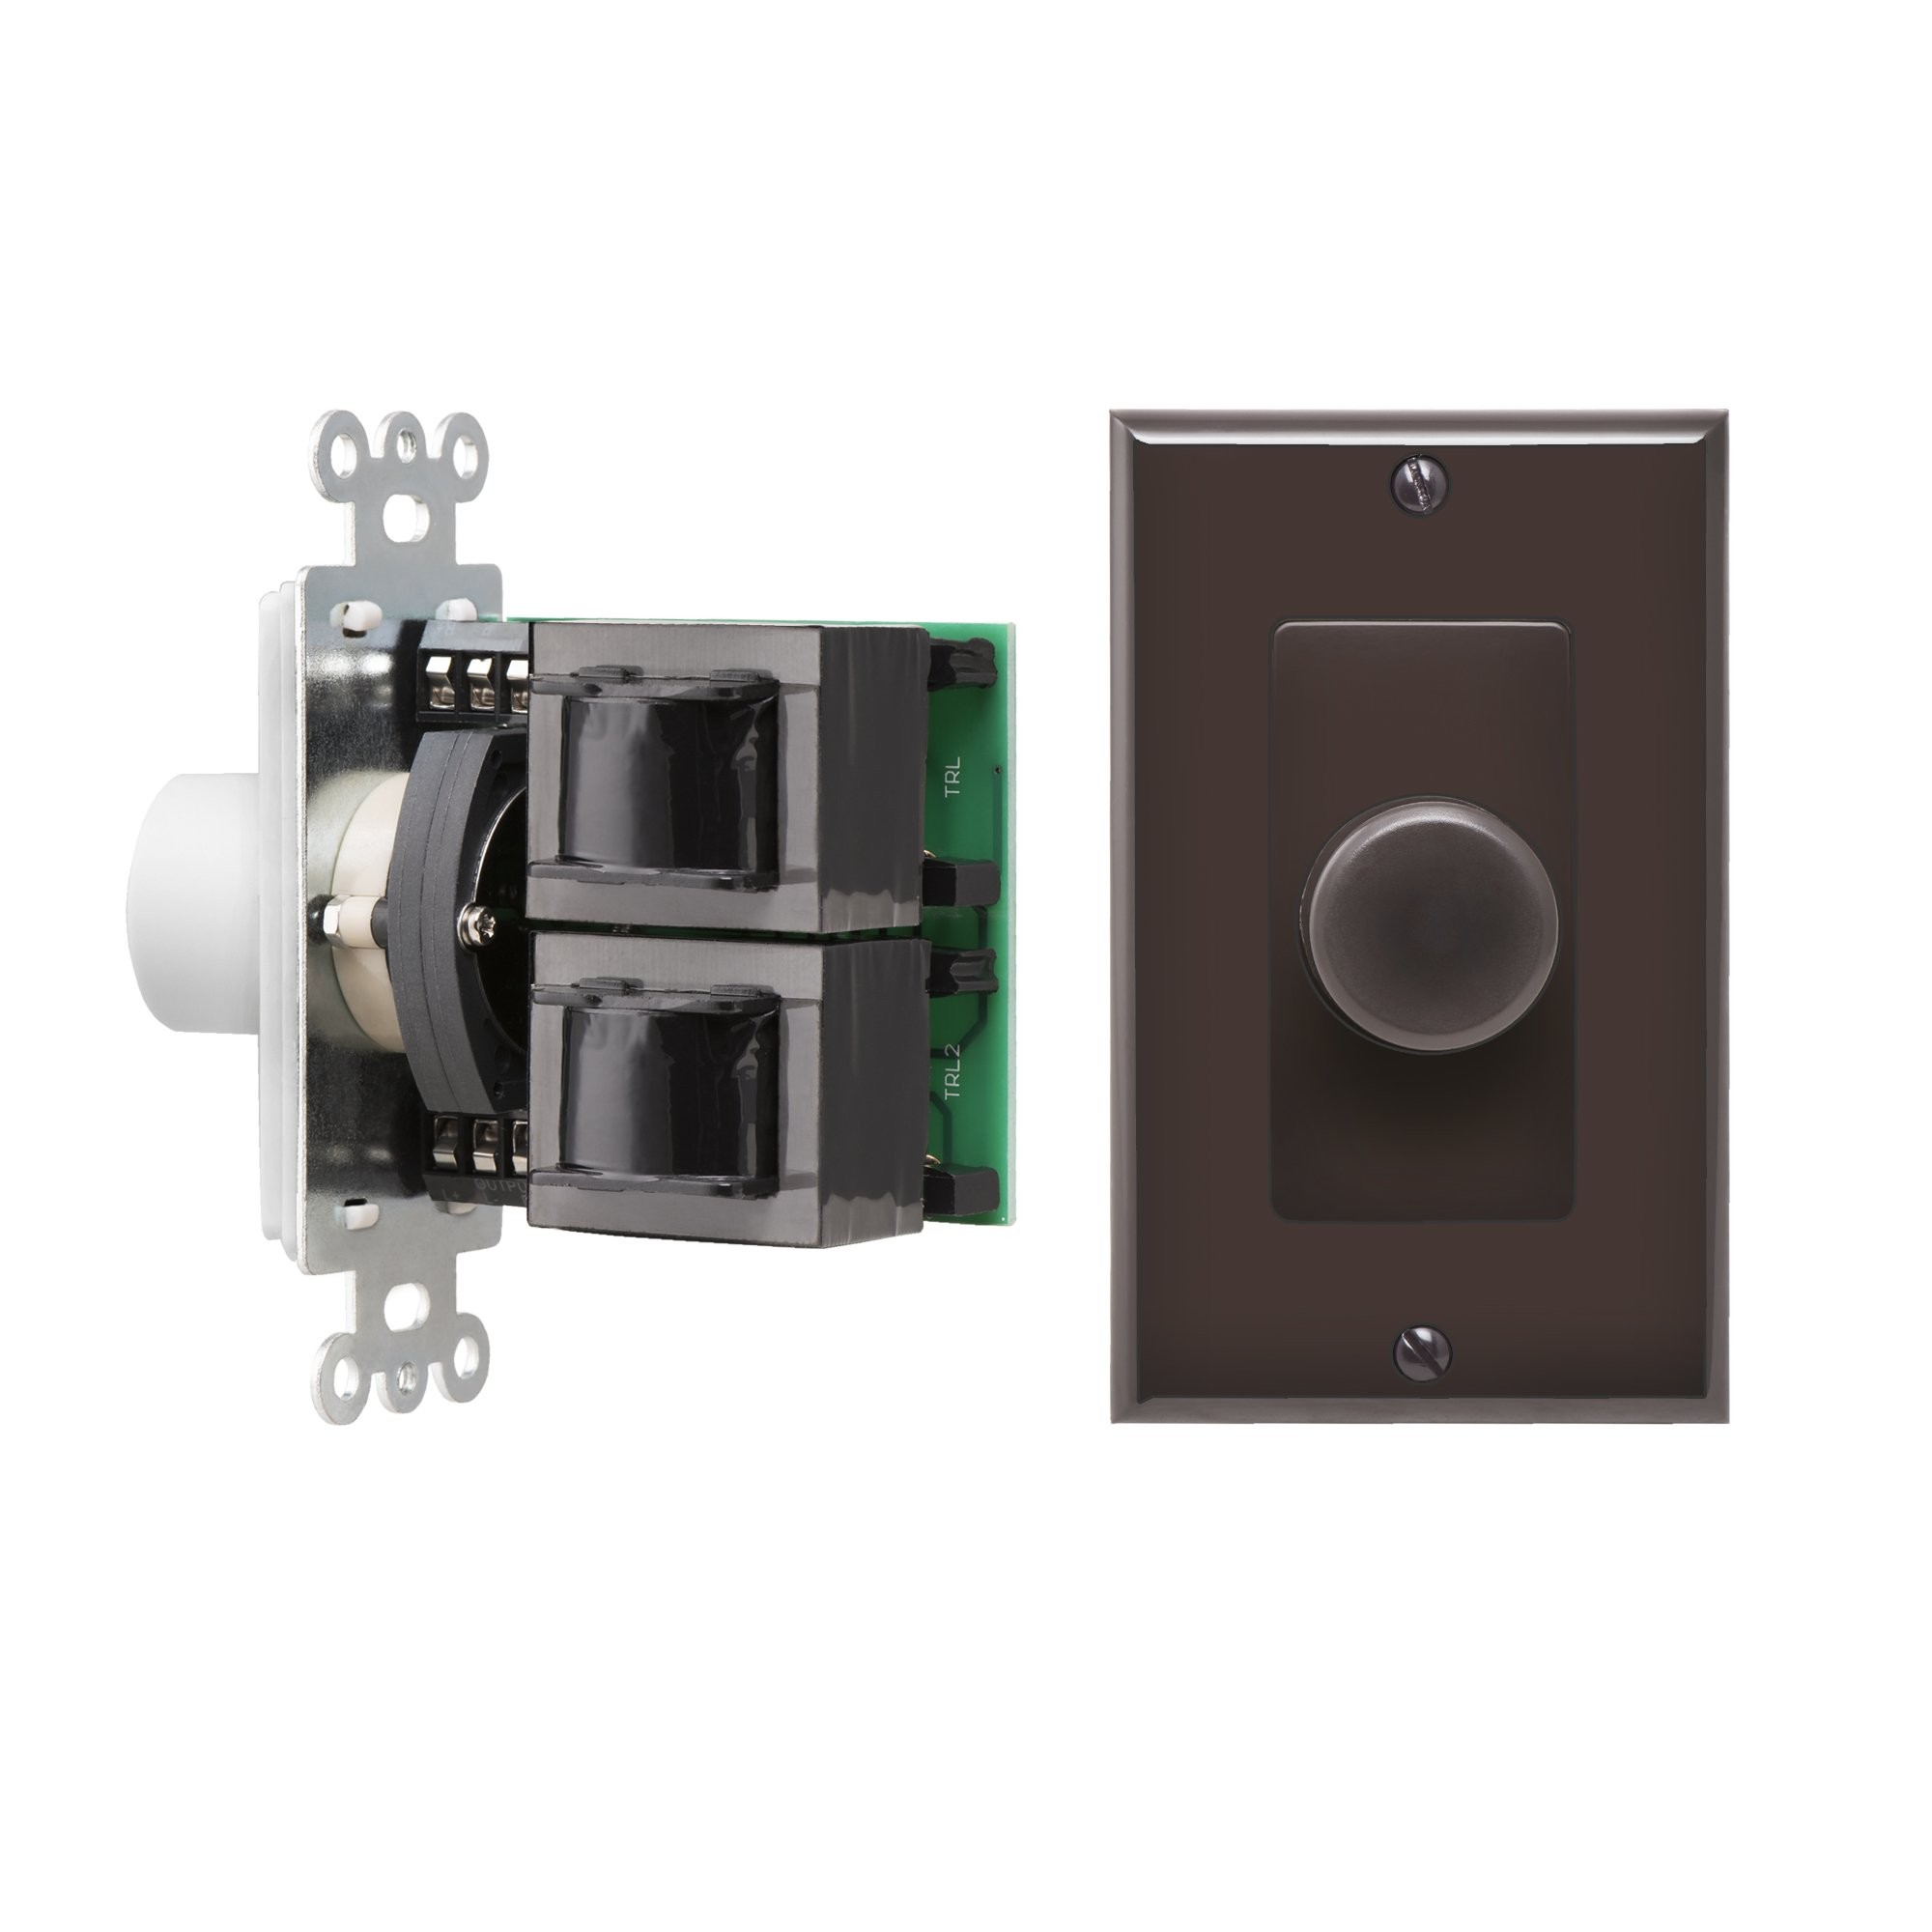 OSD Brown SVC300 Impedance Matching 100W In-Wall Rotary Knob Style Home Theater Speaker Volume Control Switchable Decora Plates